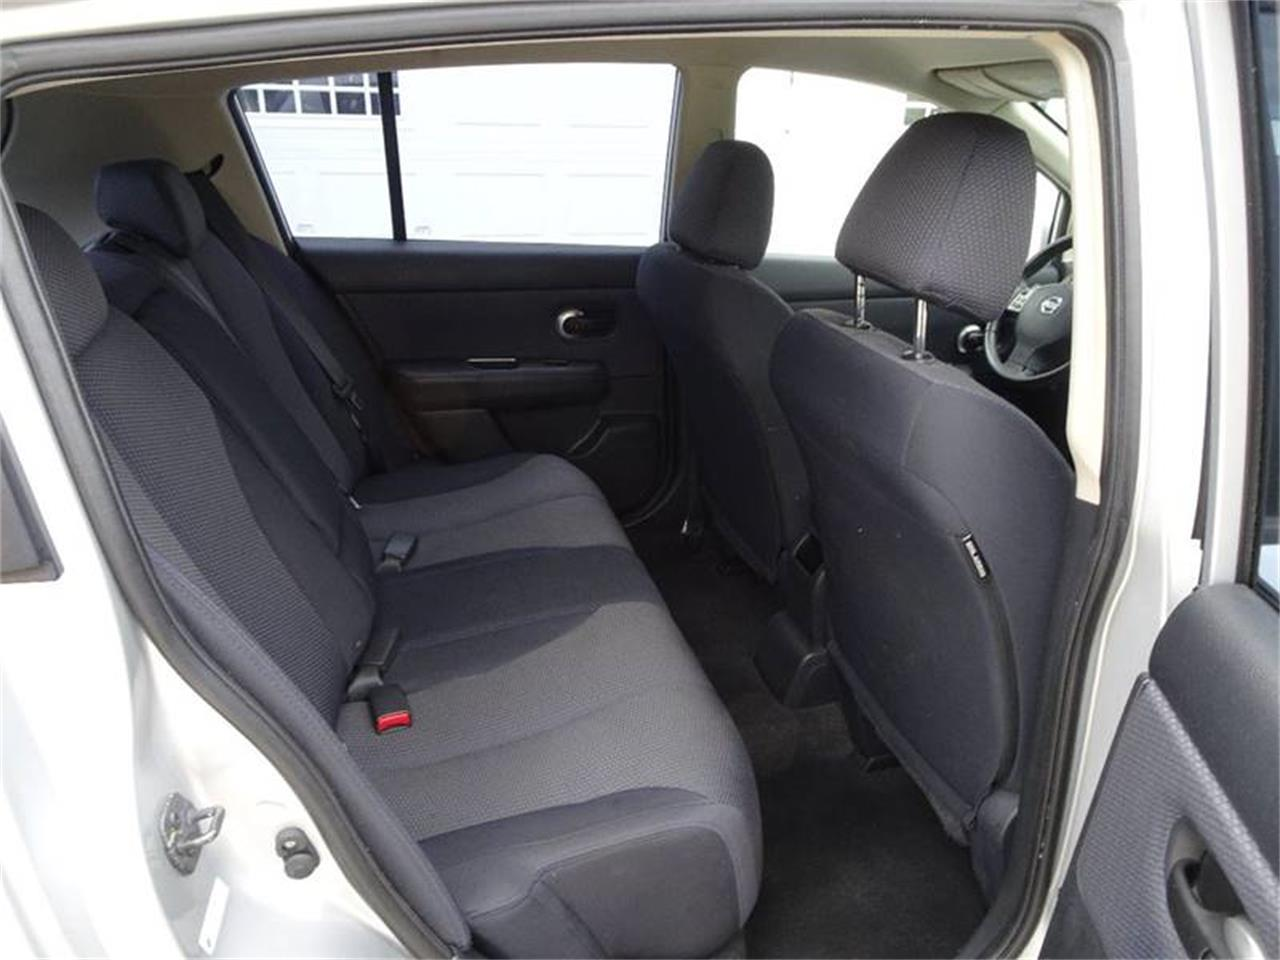 2007 Nissan Versa for sale in Hilton, NY – photo 71